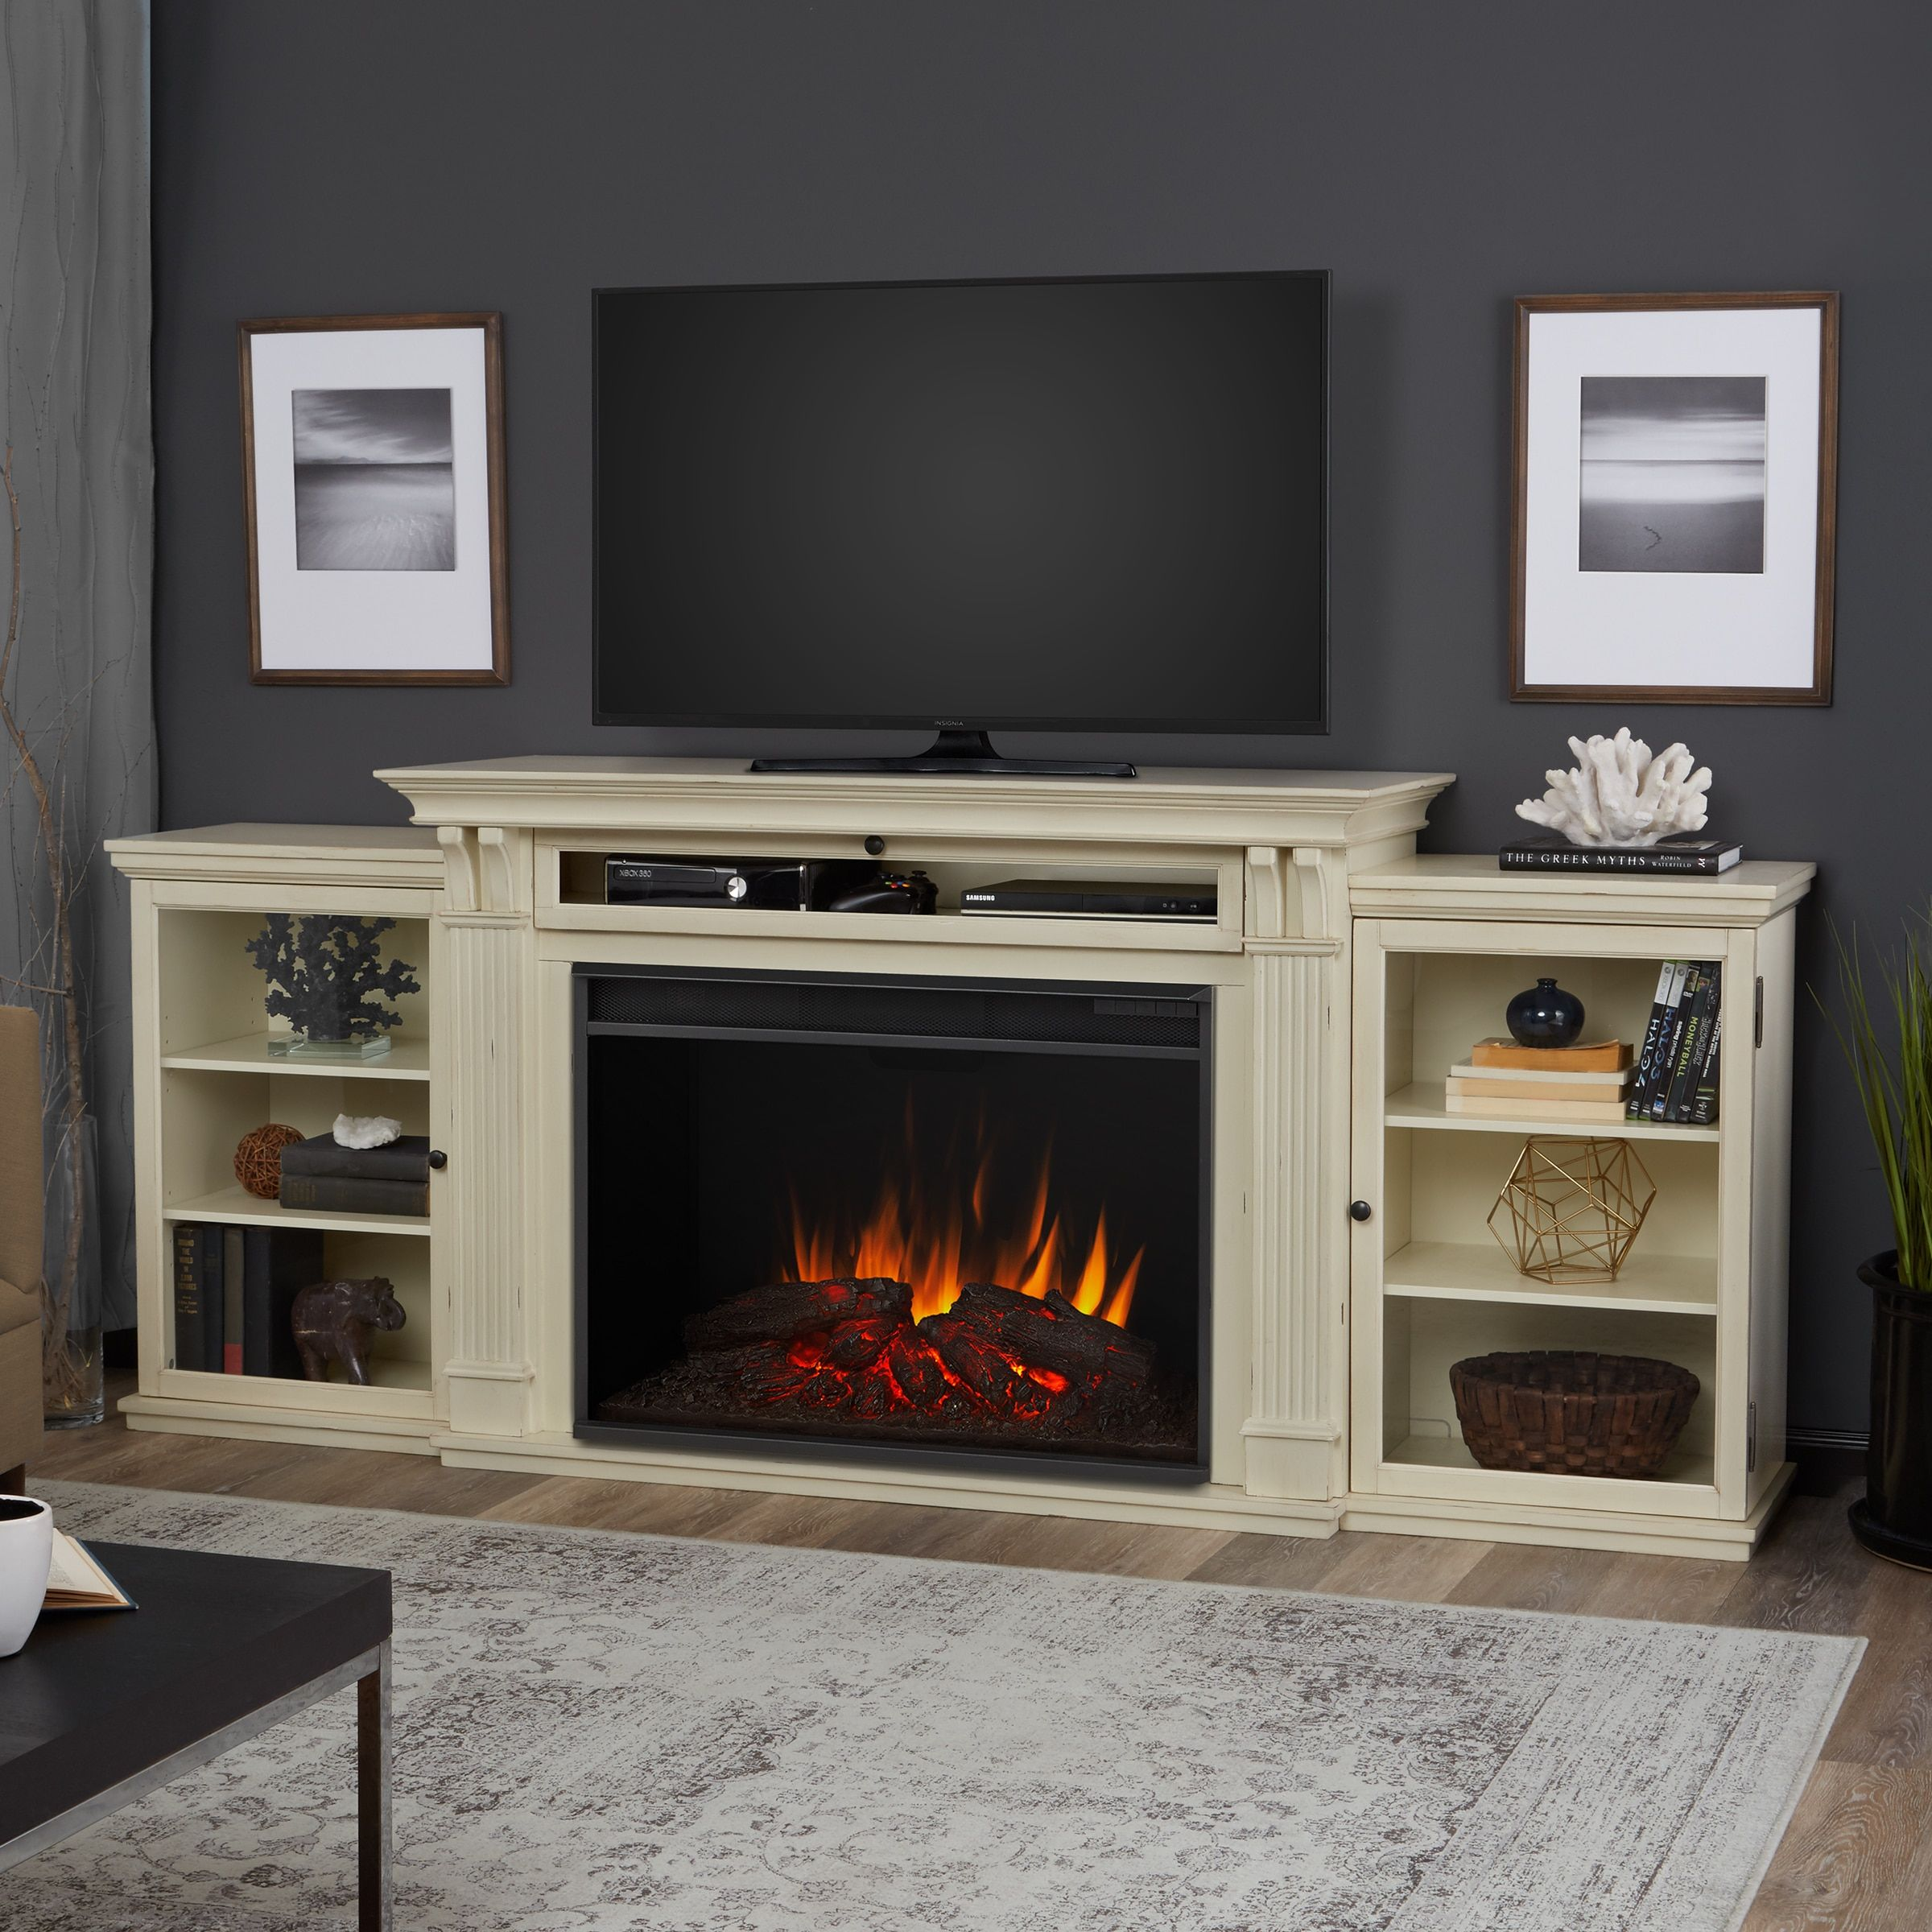 Buy fireplace tv stand from Overstock.com for everyday ...